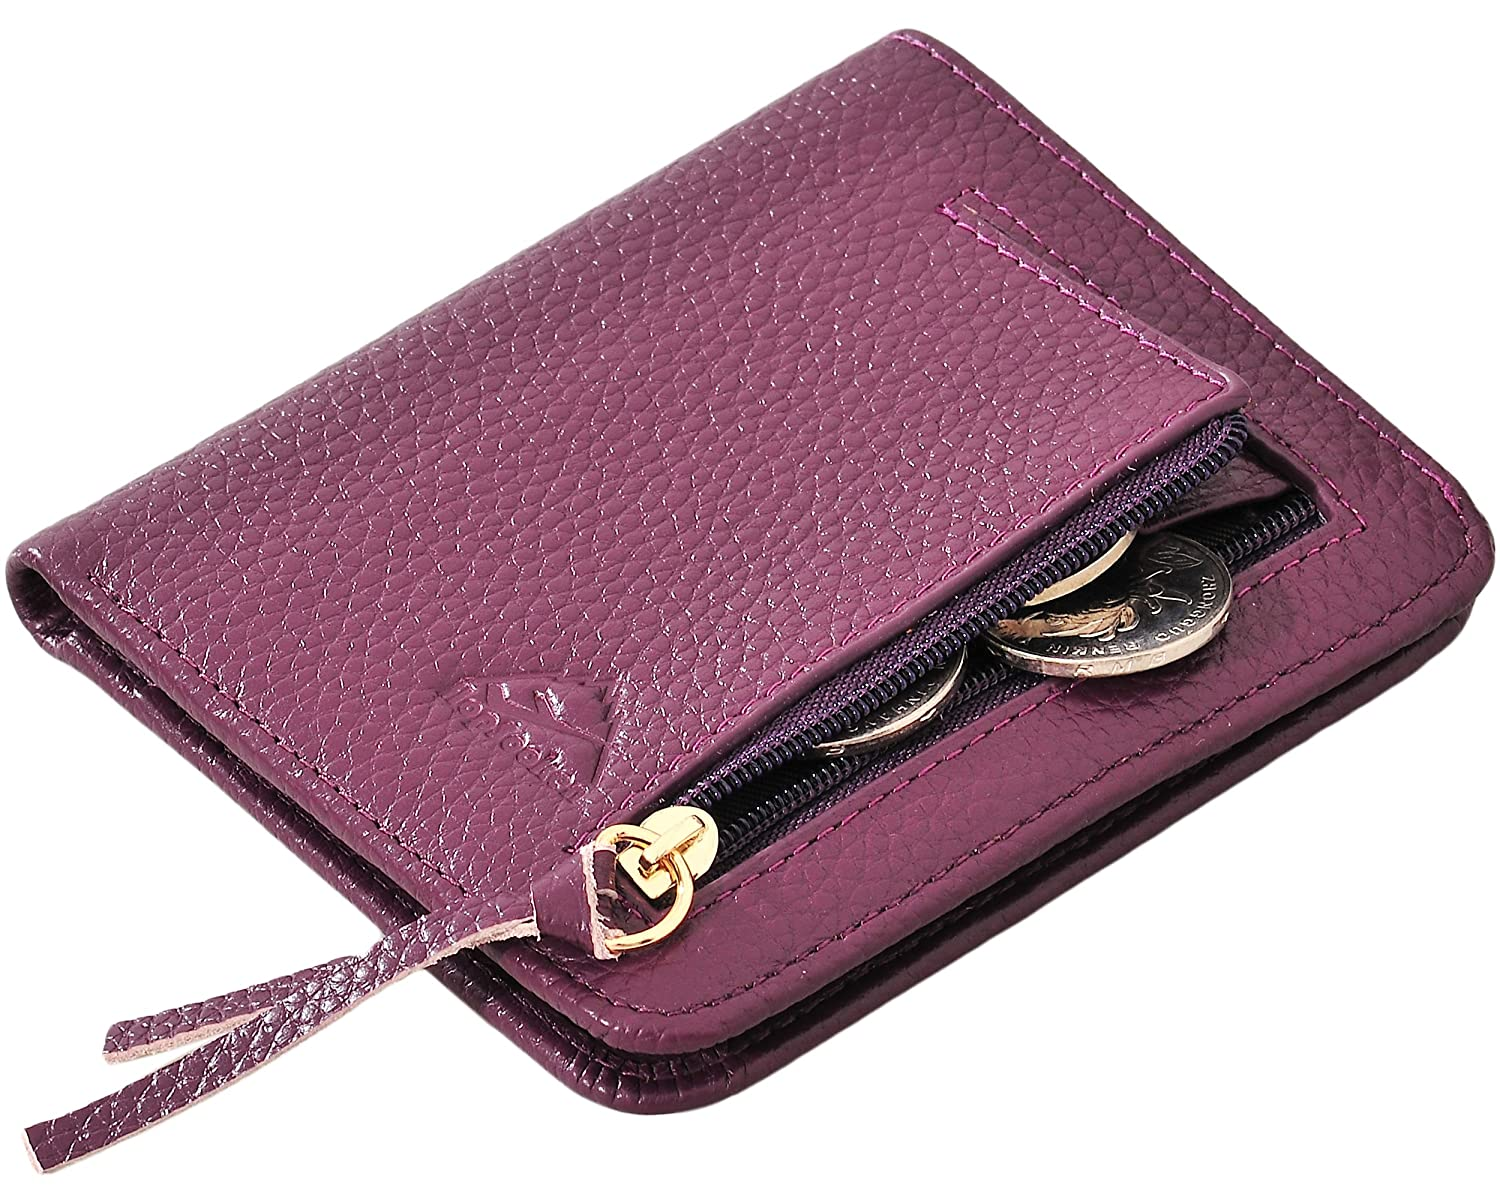 Hopsooken Womens Small Compact Bifold Card Wallet RFID Credit Card Holder Case